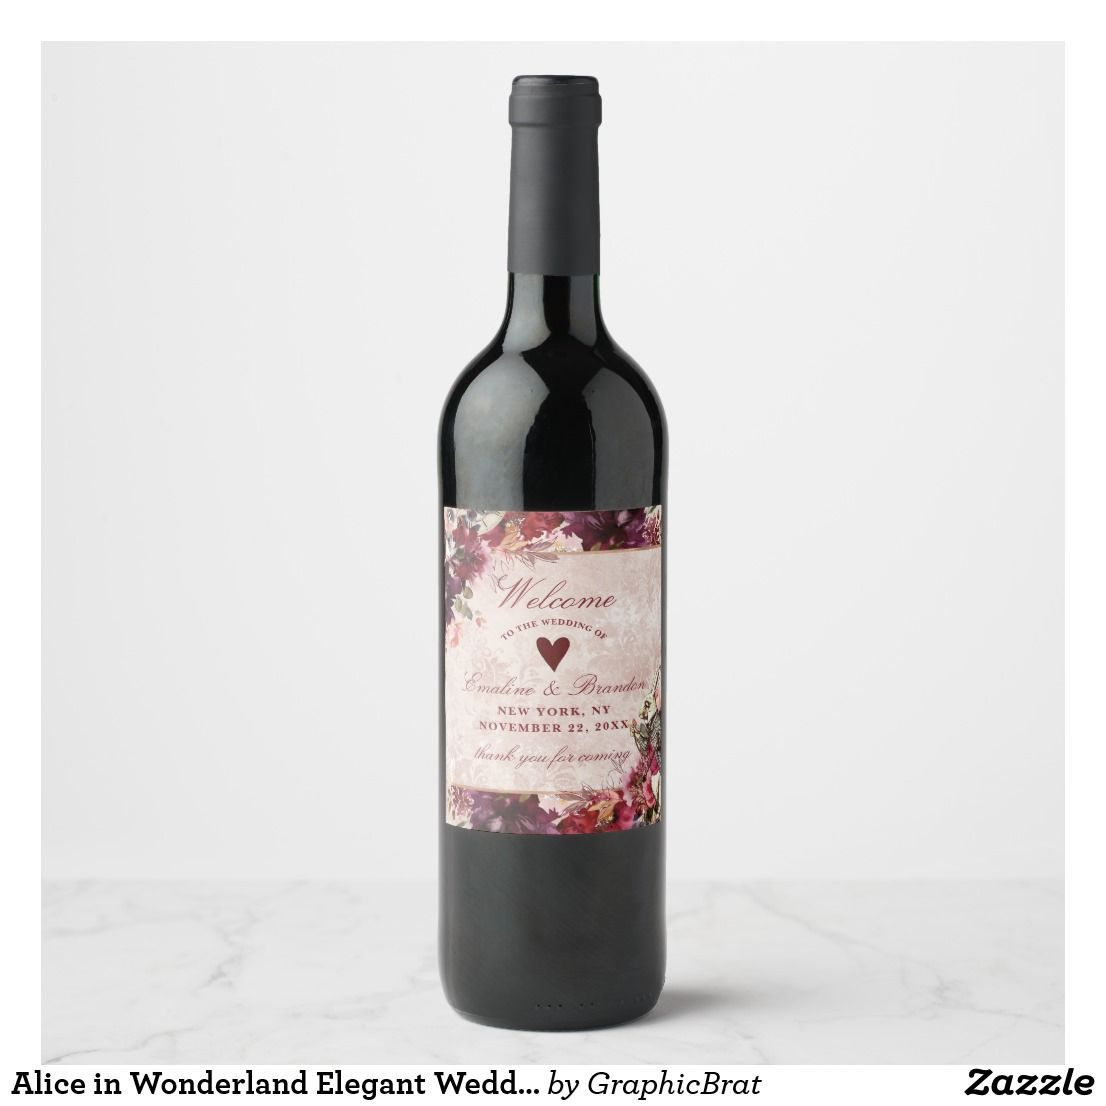 Wedding decorations with wine bottles november 2018 Alice in Wonderland Elegant Wedding Welcome Wine Label  Wedding